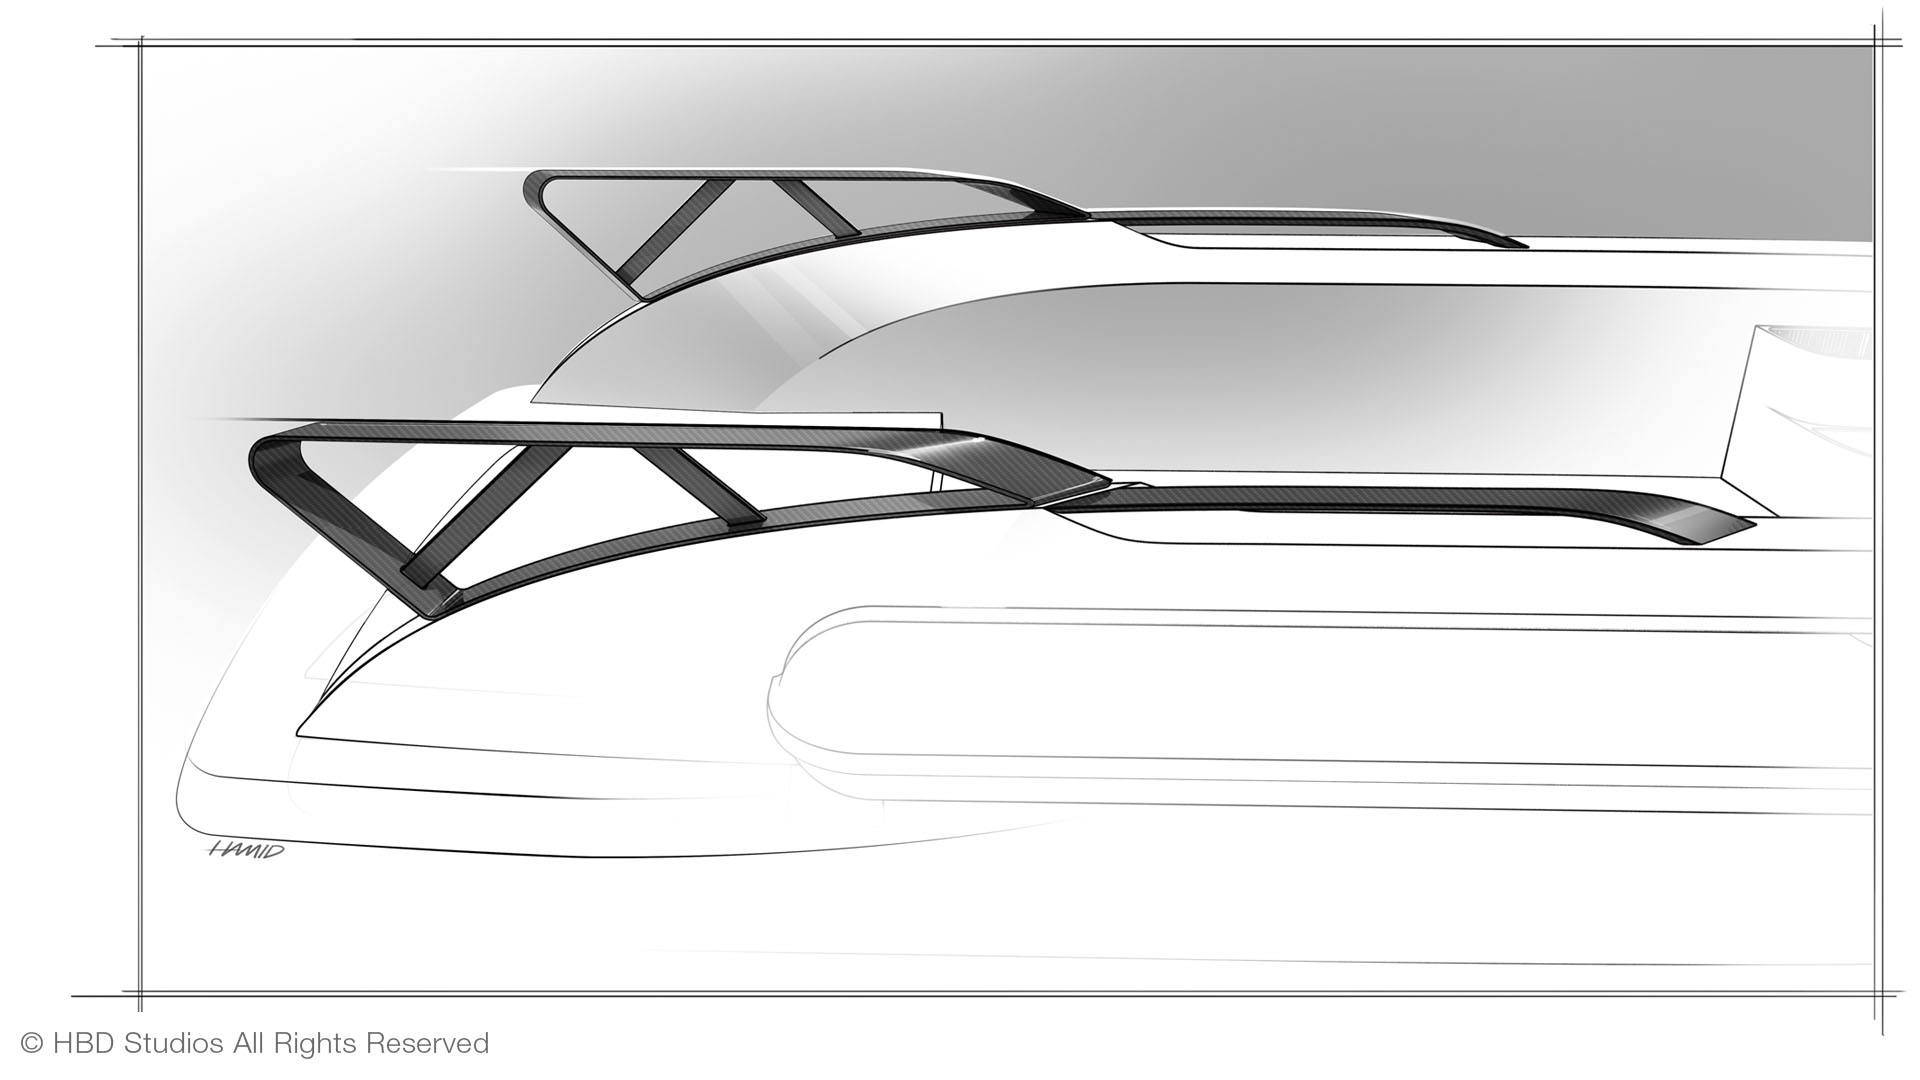 Yacht Design Sketch of CC LINE superyacht tender, central console boat, RIB tender, yacht design by Hamid Bekradi, HBD Studios